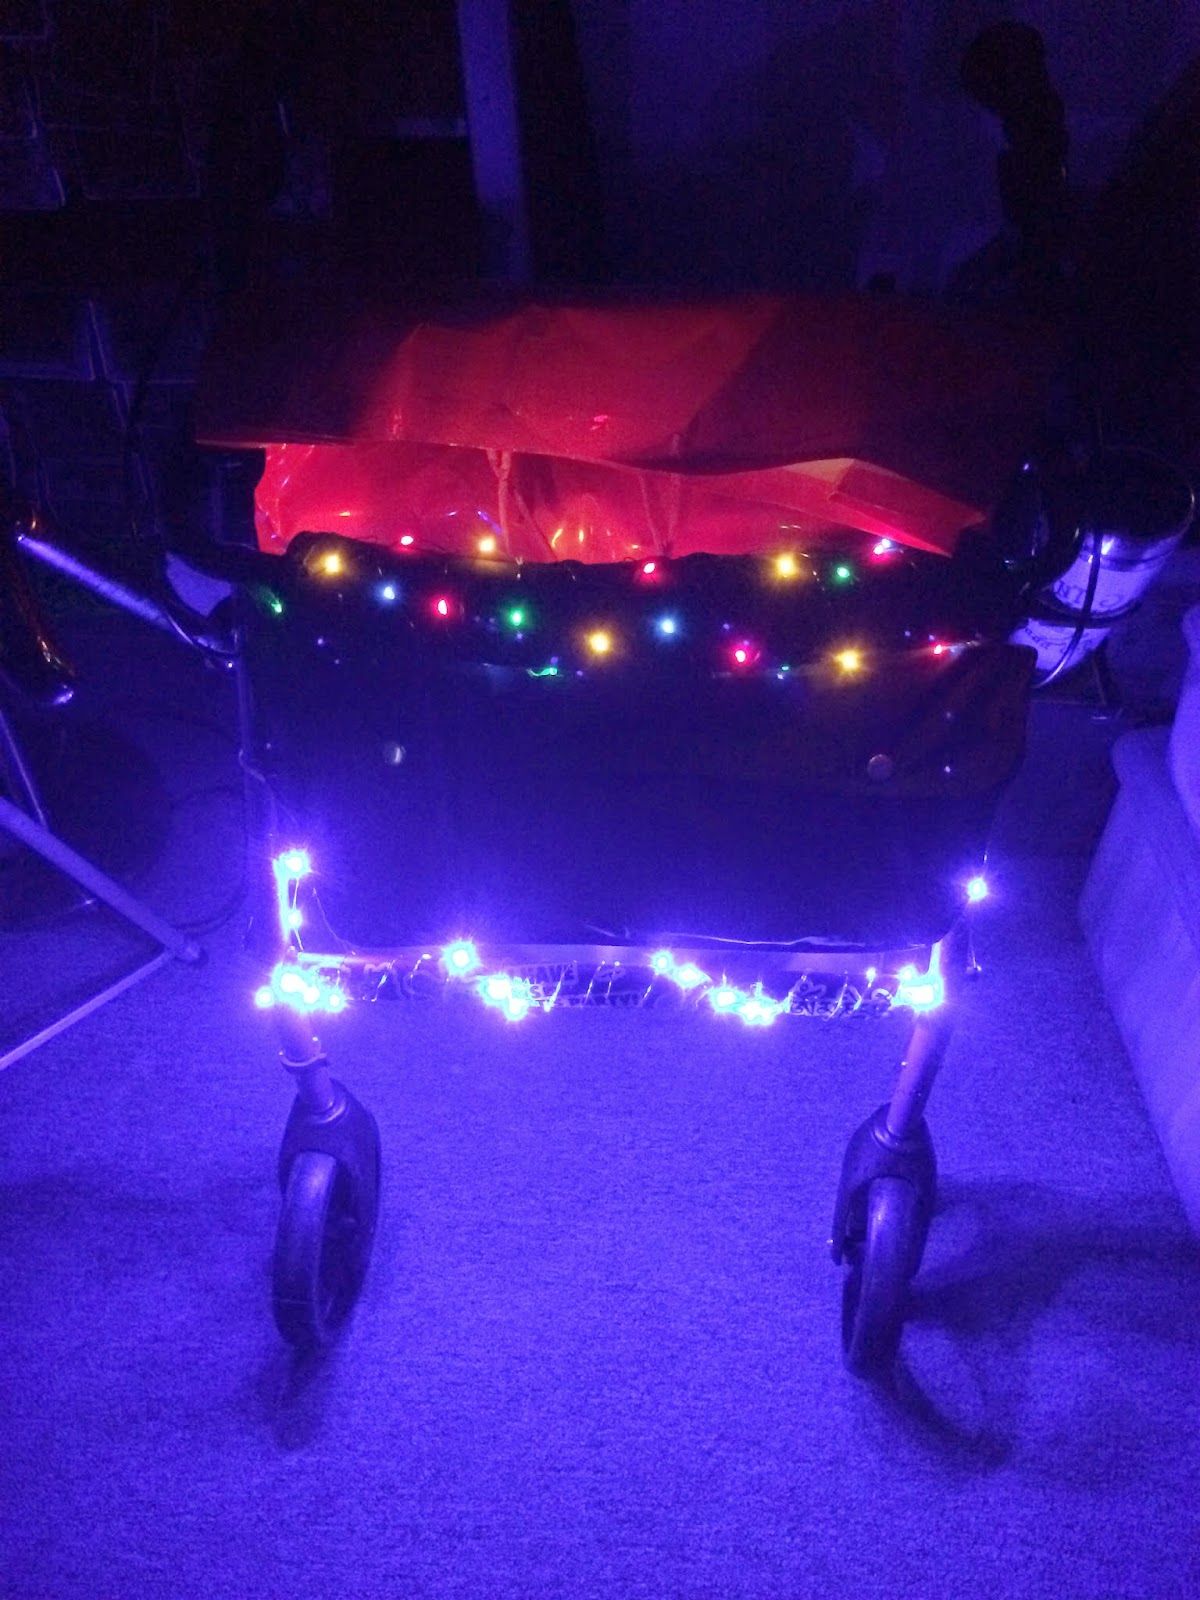 Photograph: A close-up of the font of a rollator walker. Wrapped around the front bar is a string of lights that are shining bright blue. Wrapped around the top bar is a sting of Christmas lights in red, green, blue, and yellow that are reflecting off of a red bag.